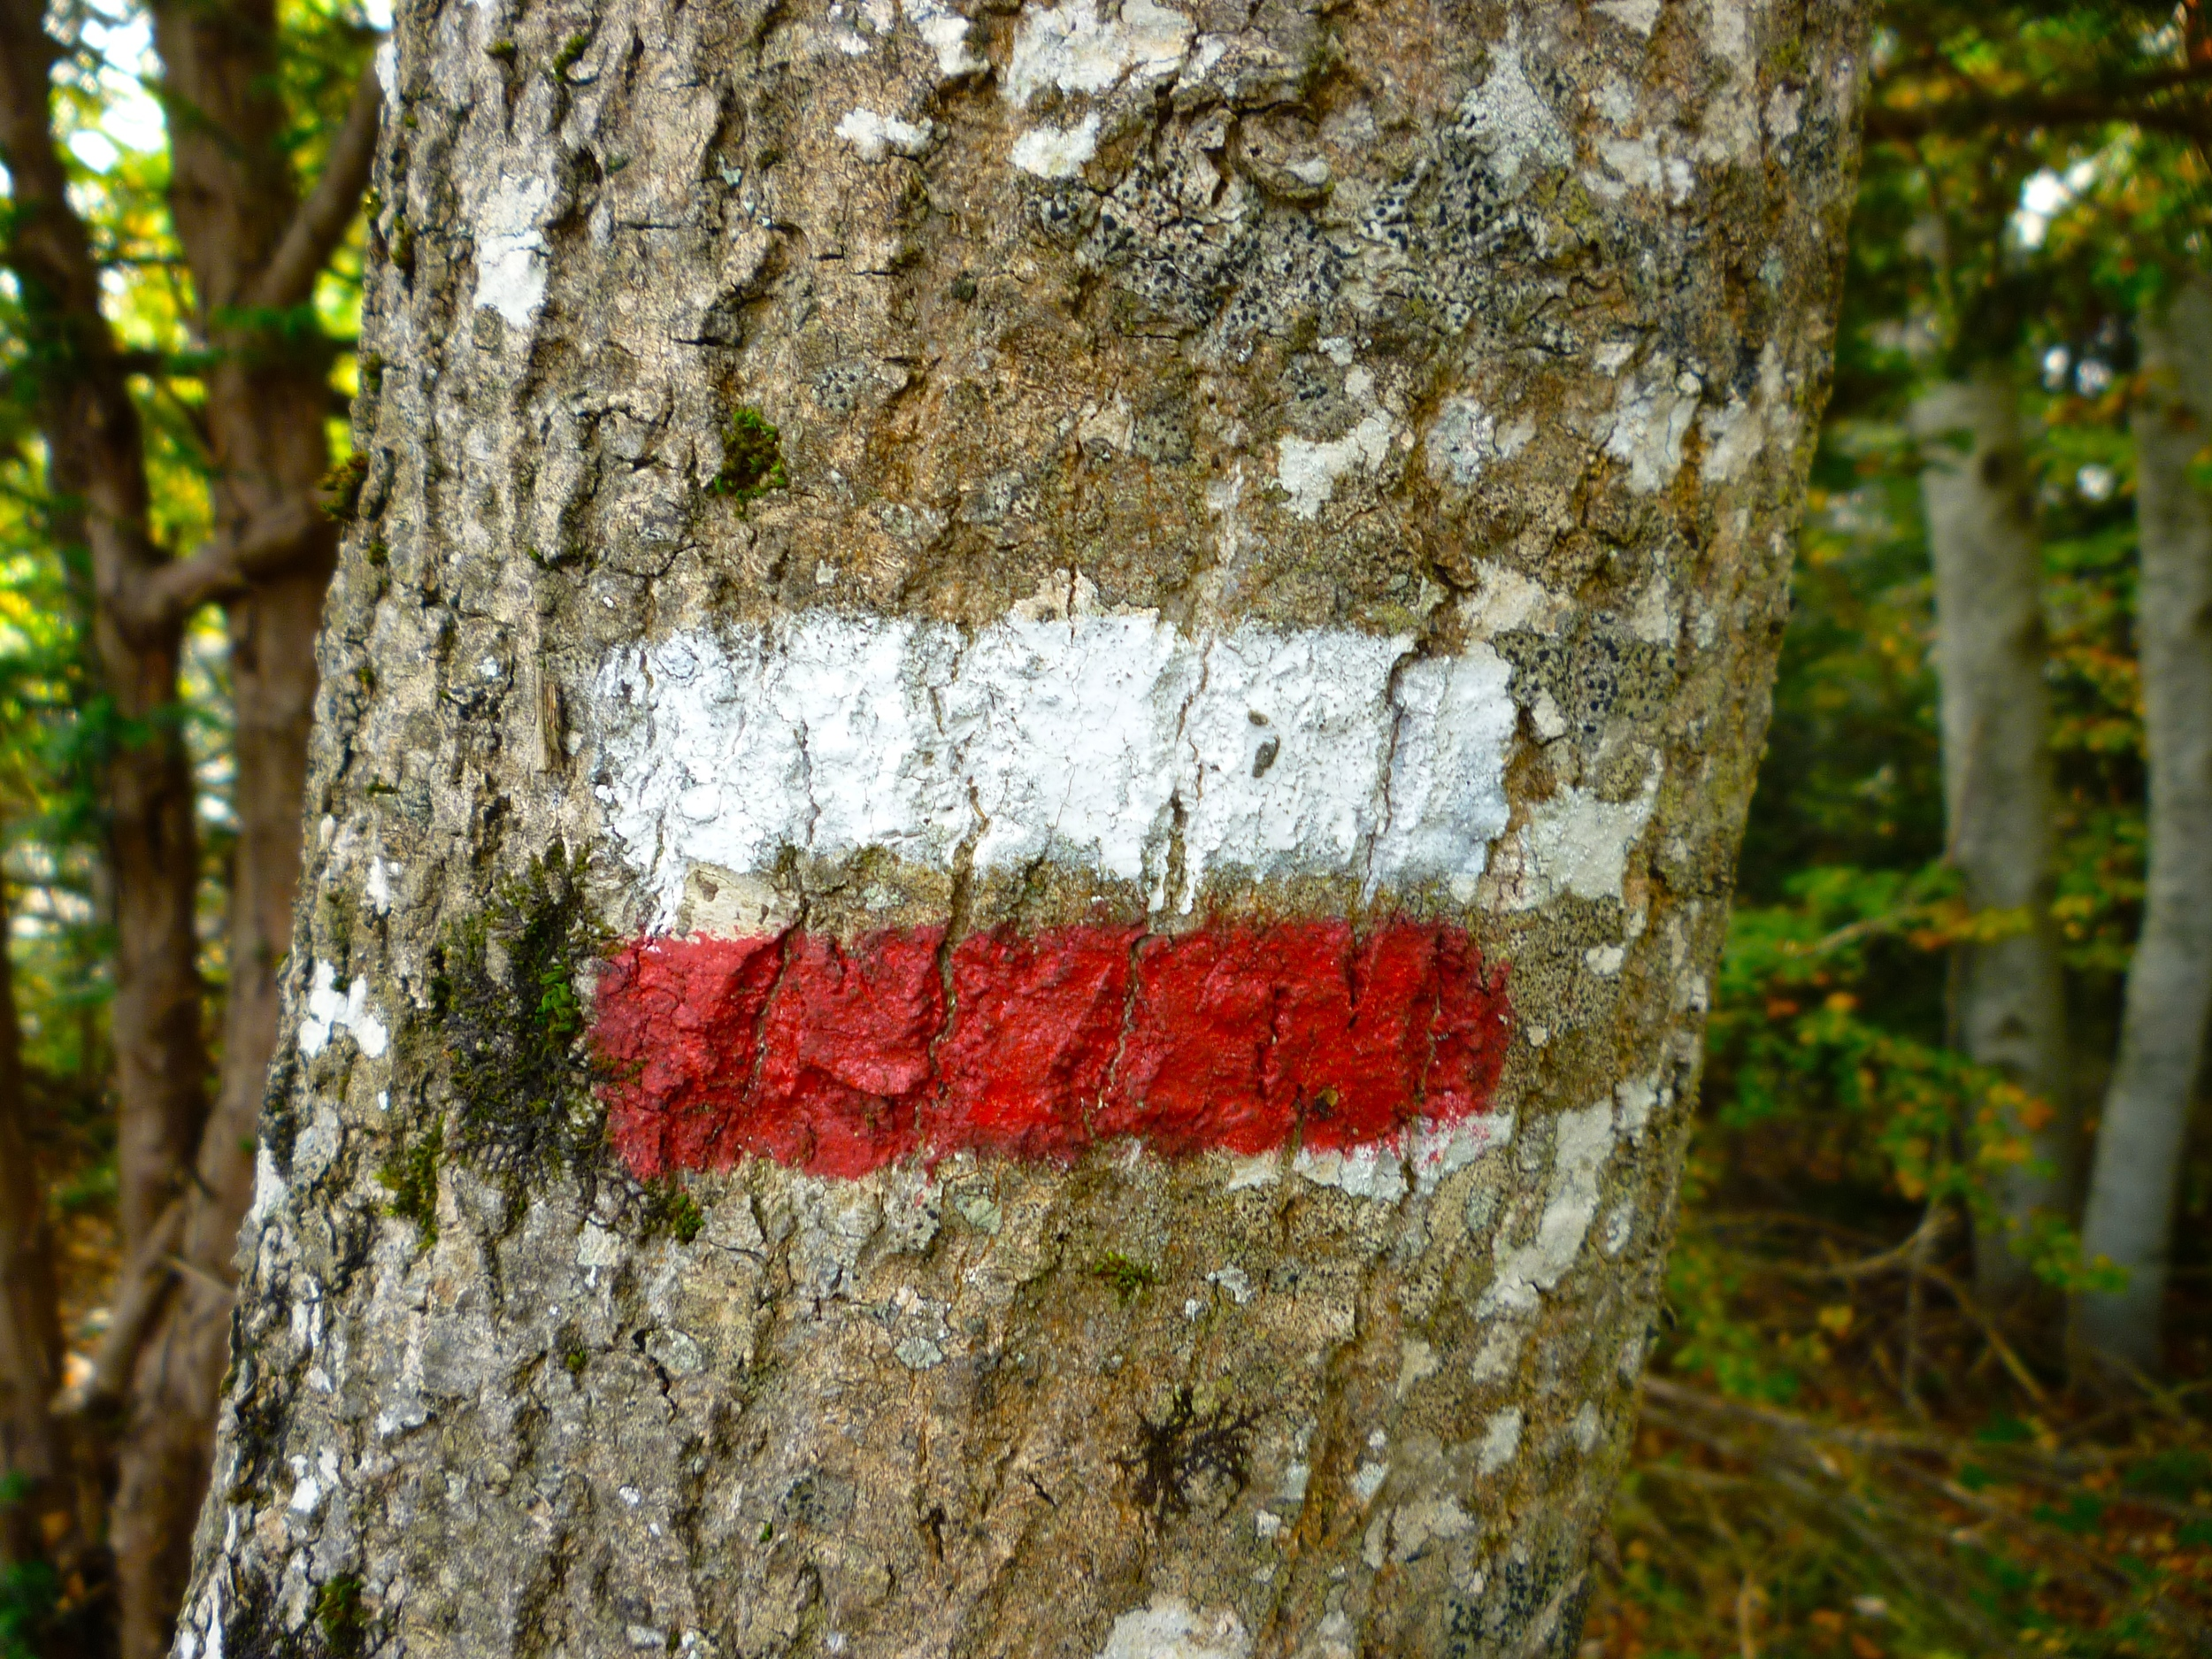 The GR trail marker